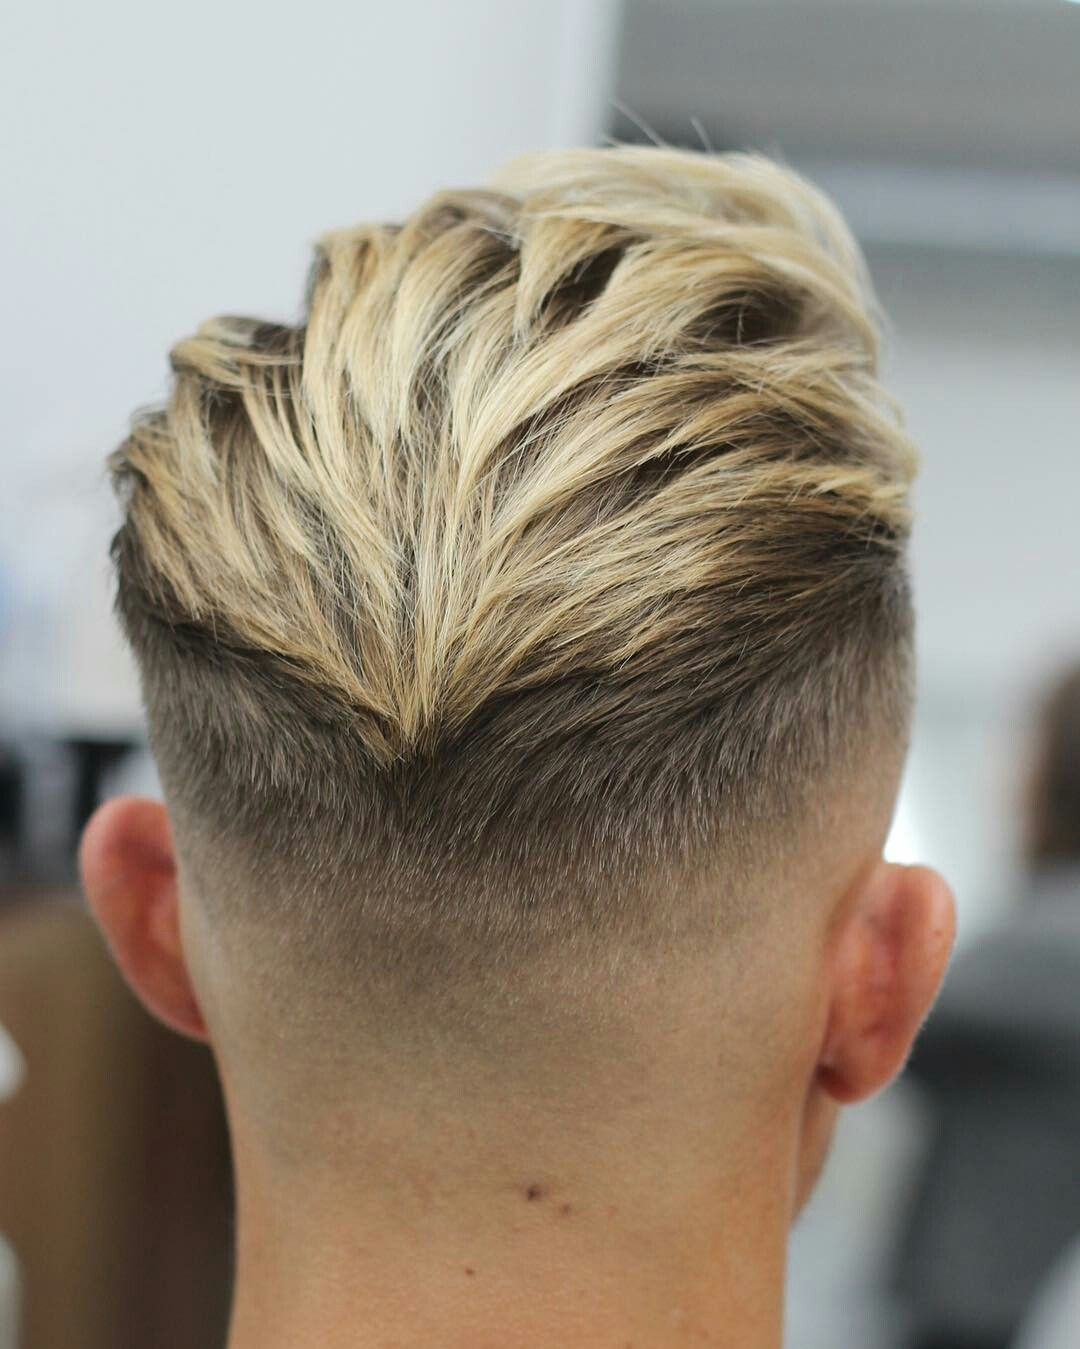 Most popular mens haircuts absolutely my style  totally digginu it   haircut men  pinterest